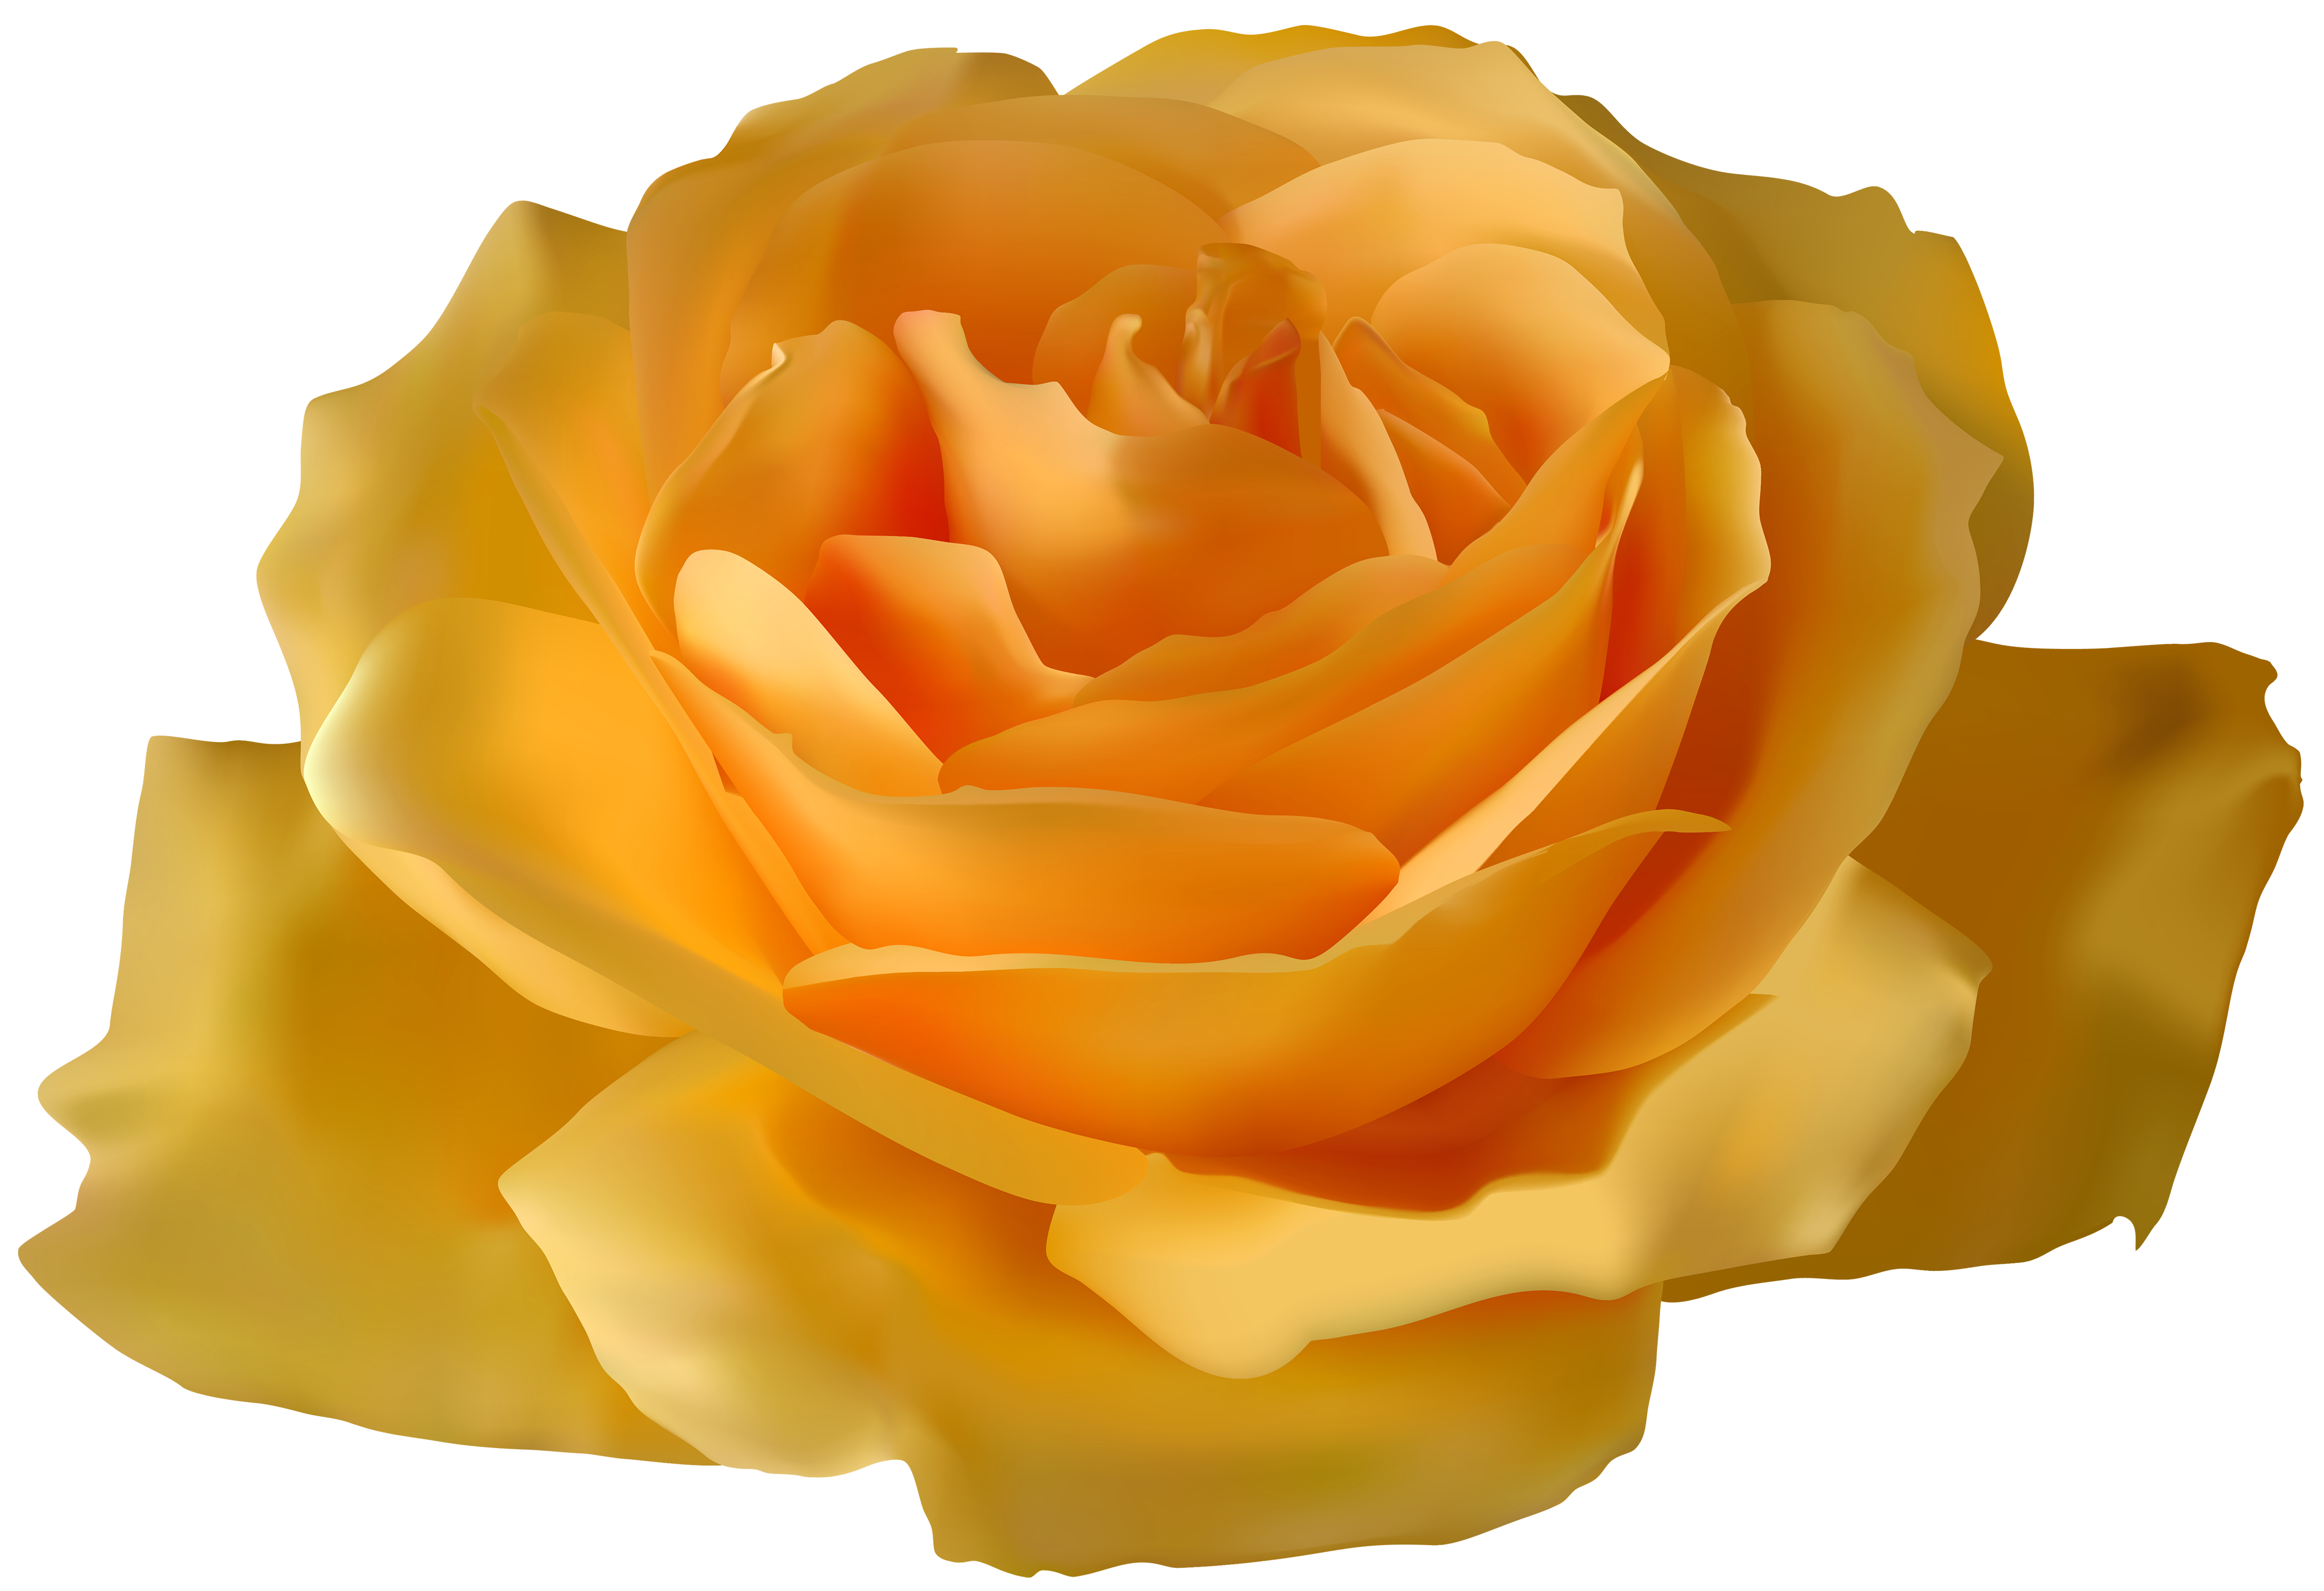 Png best web. Rose clipart yellow rose